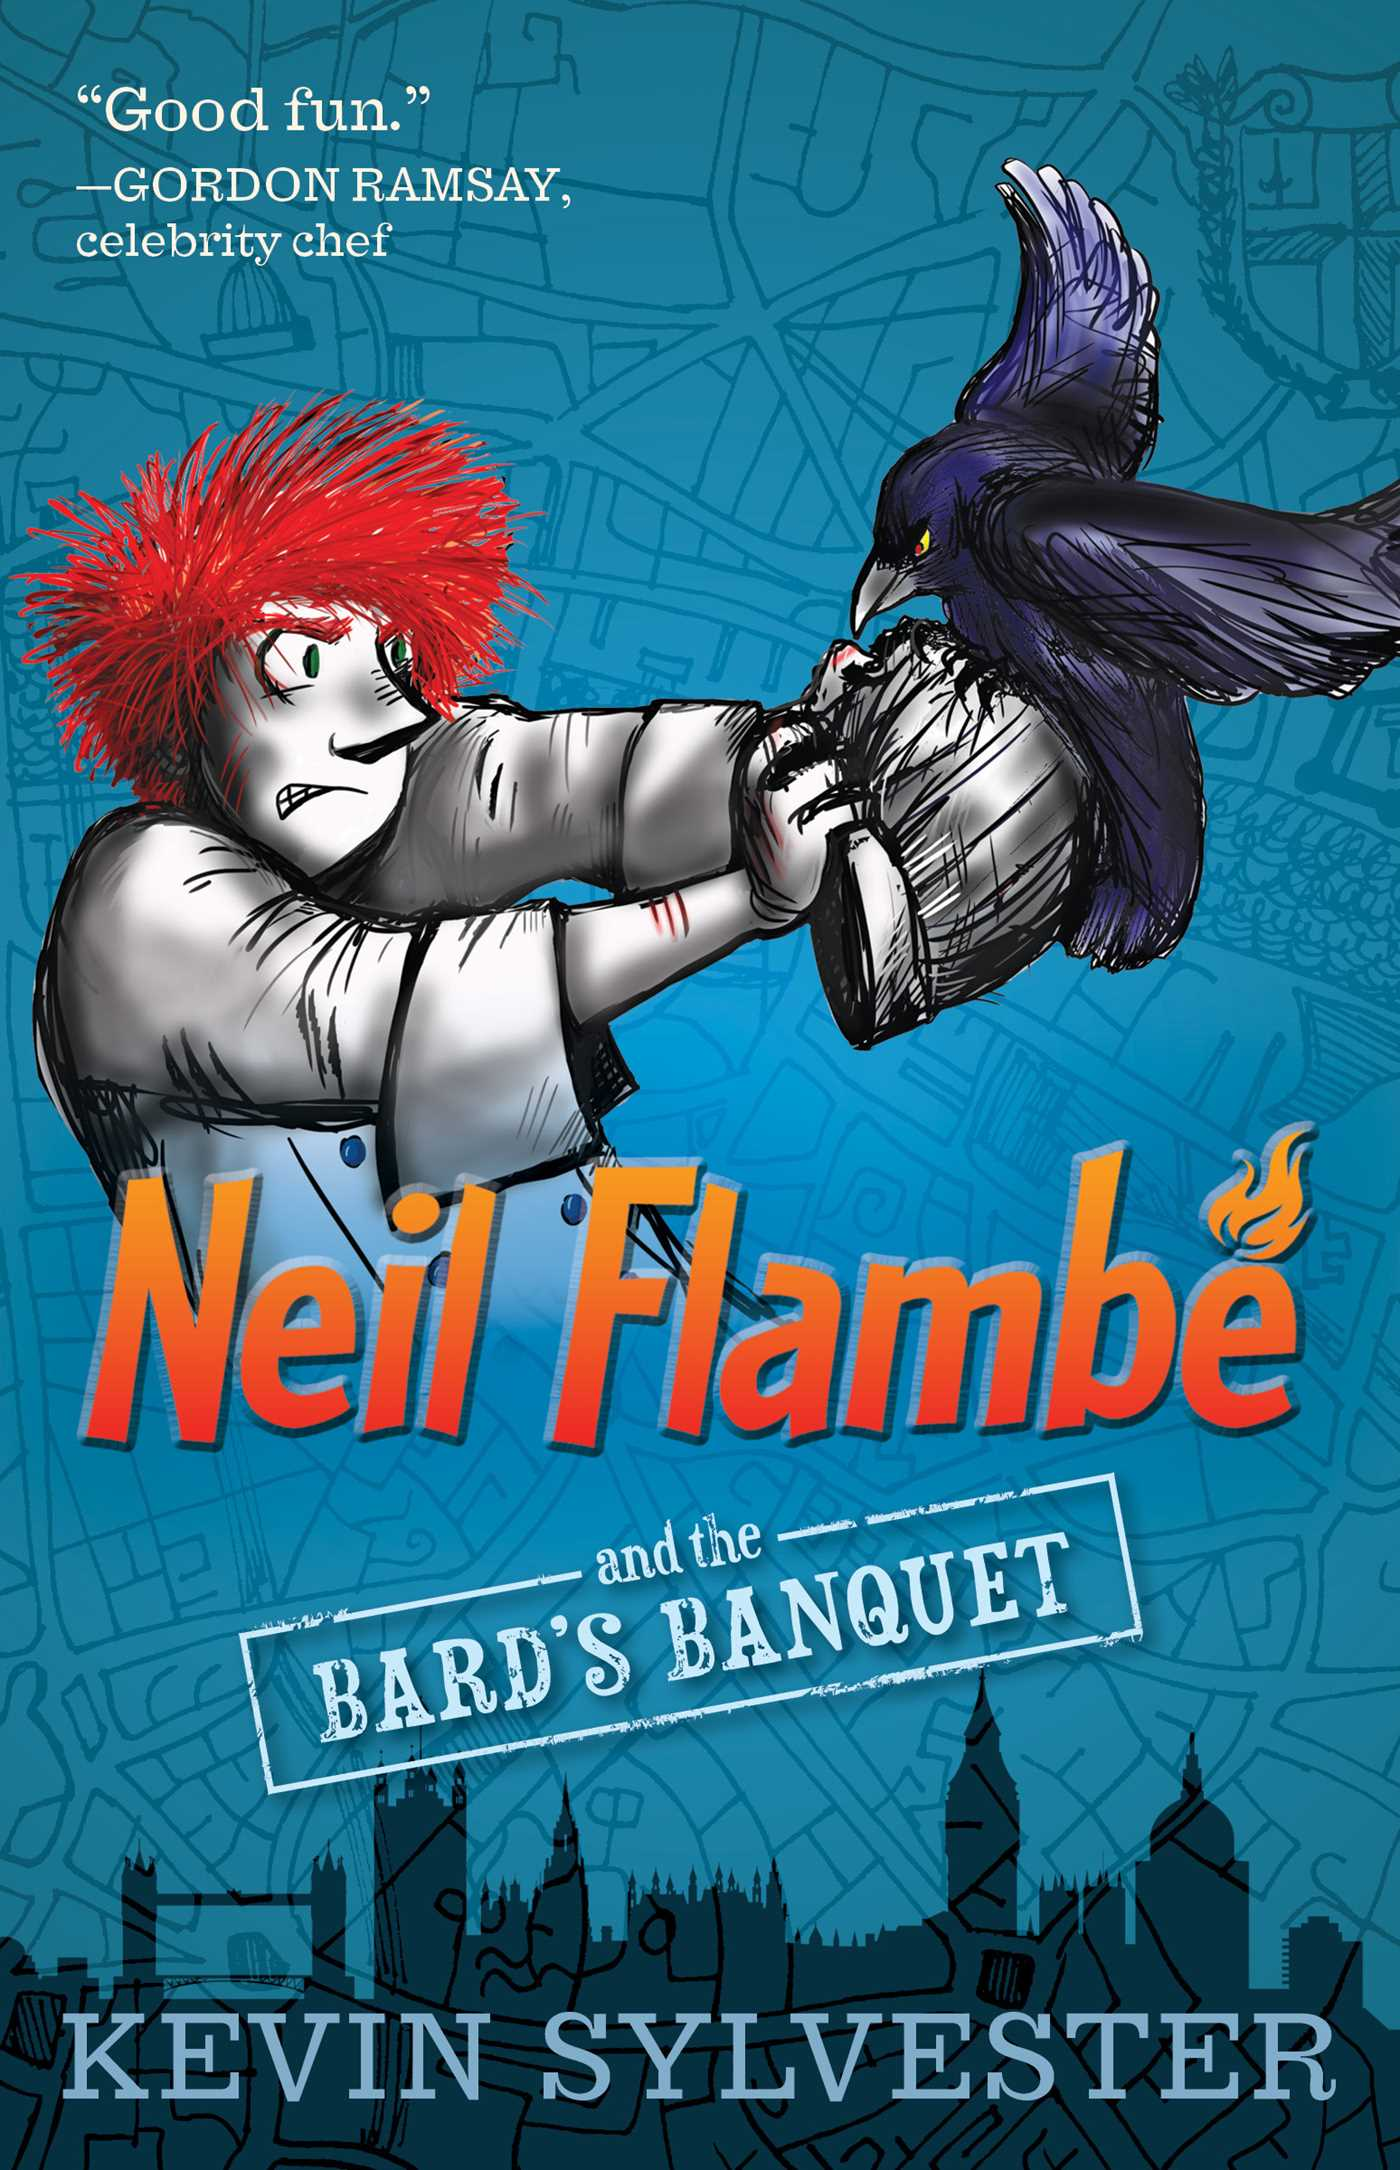 Neil flambe and the bards banquet 9781481410403 hr